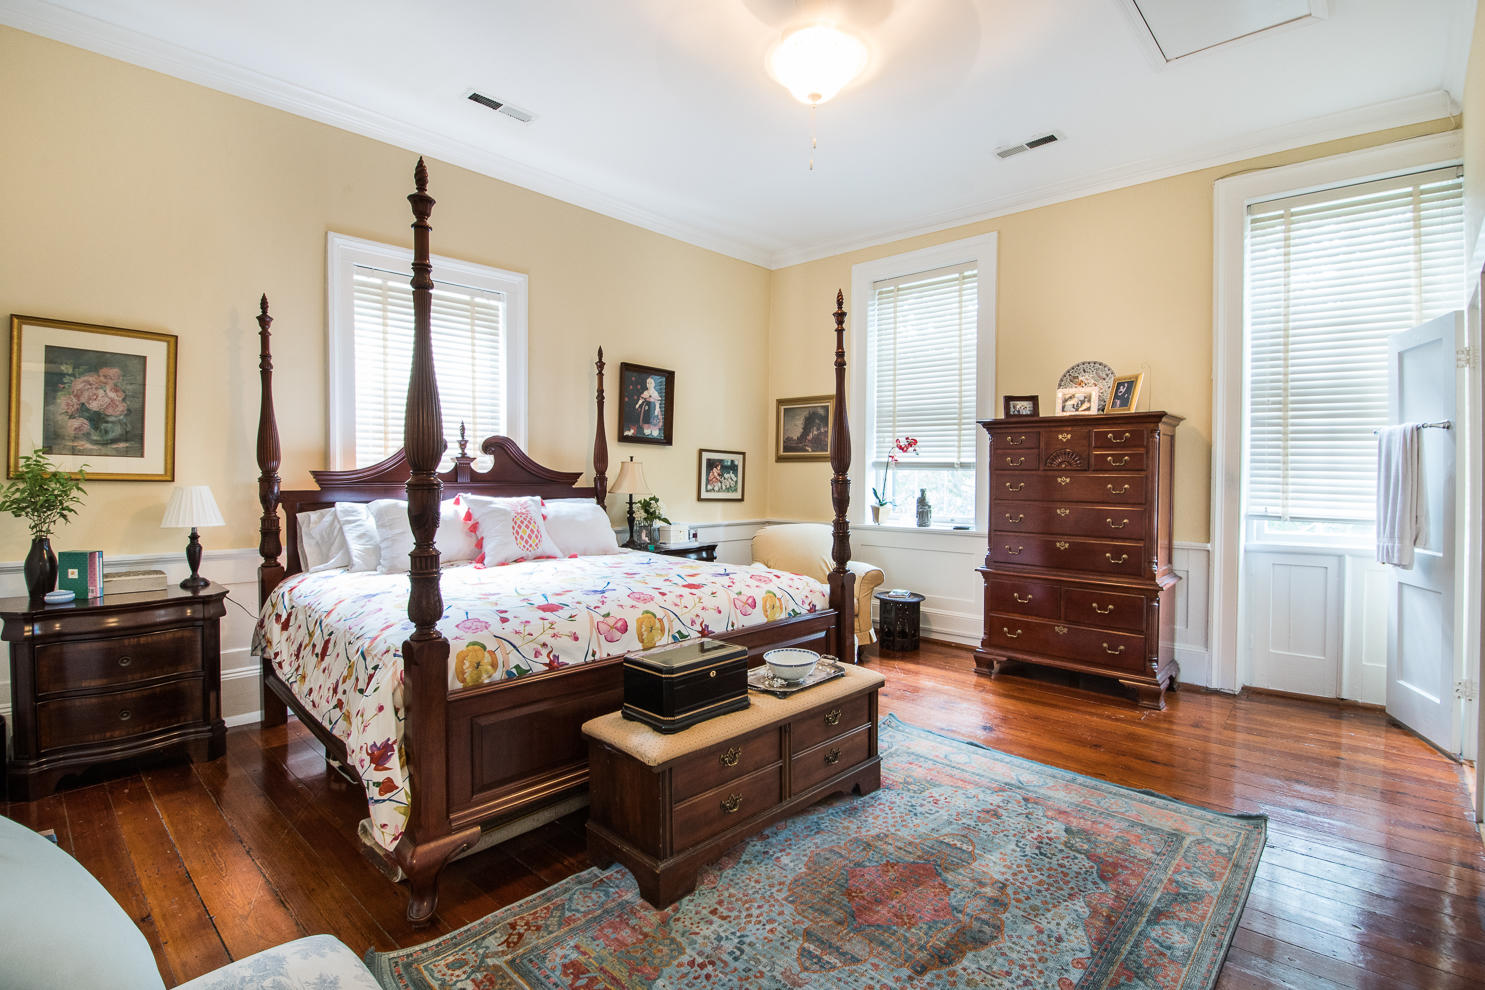 South of Broad Homes For Sale - 1 Prices, Charleston, SC - 36